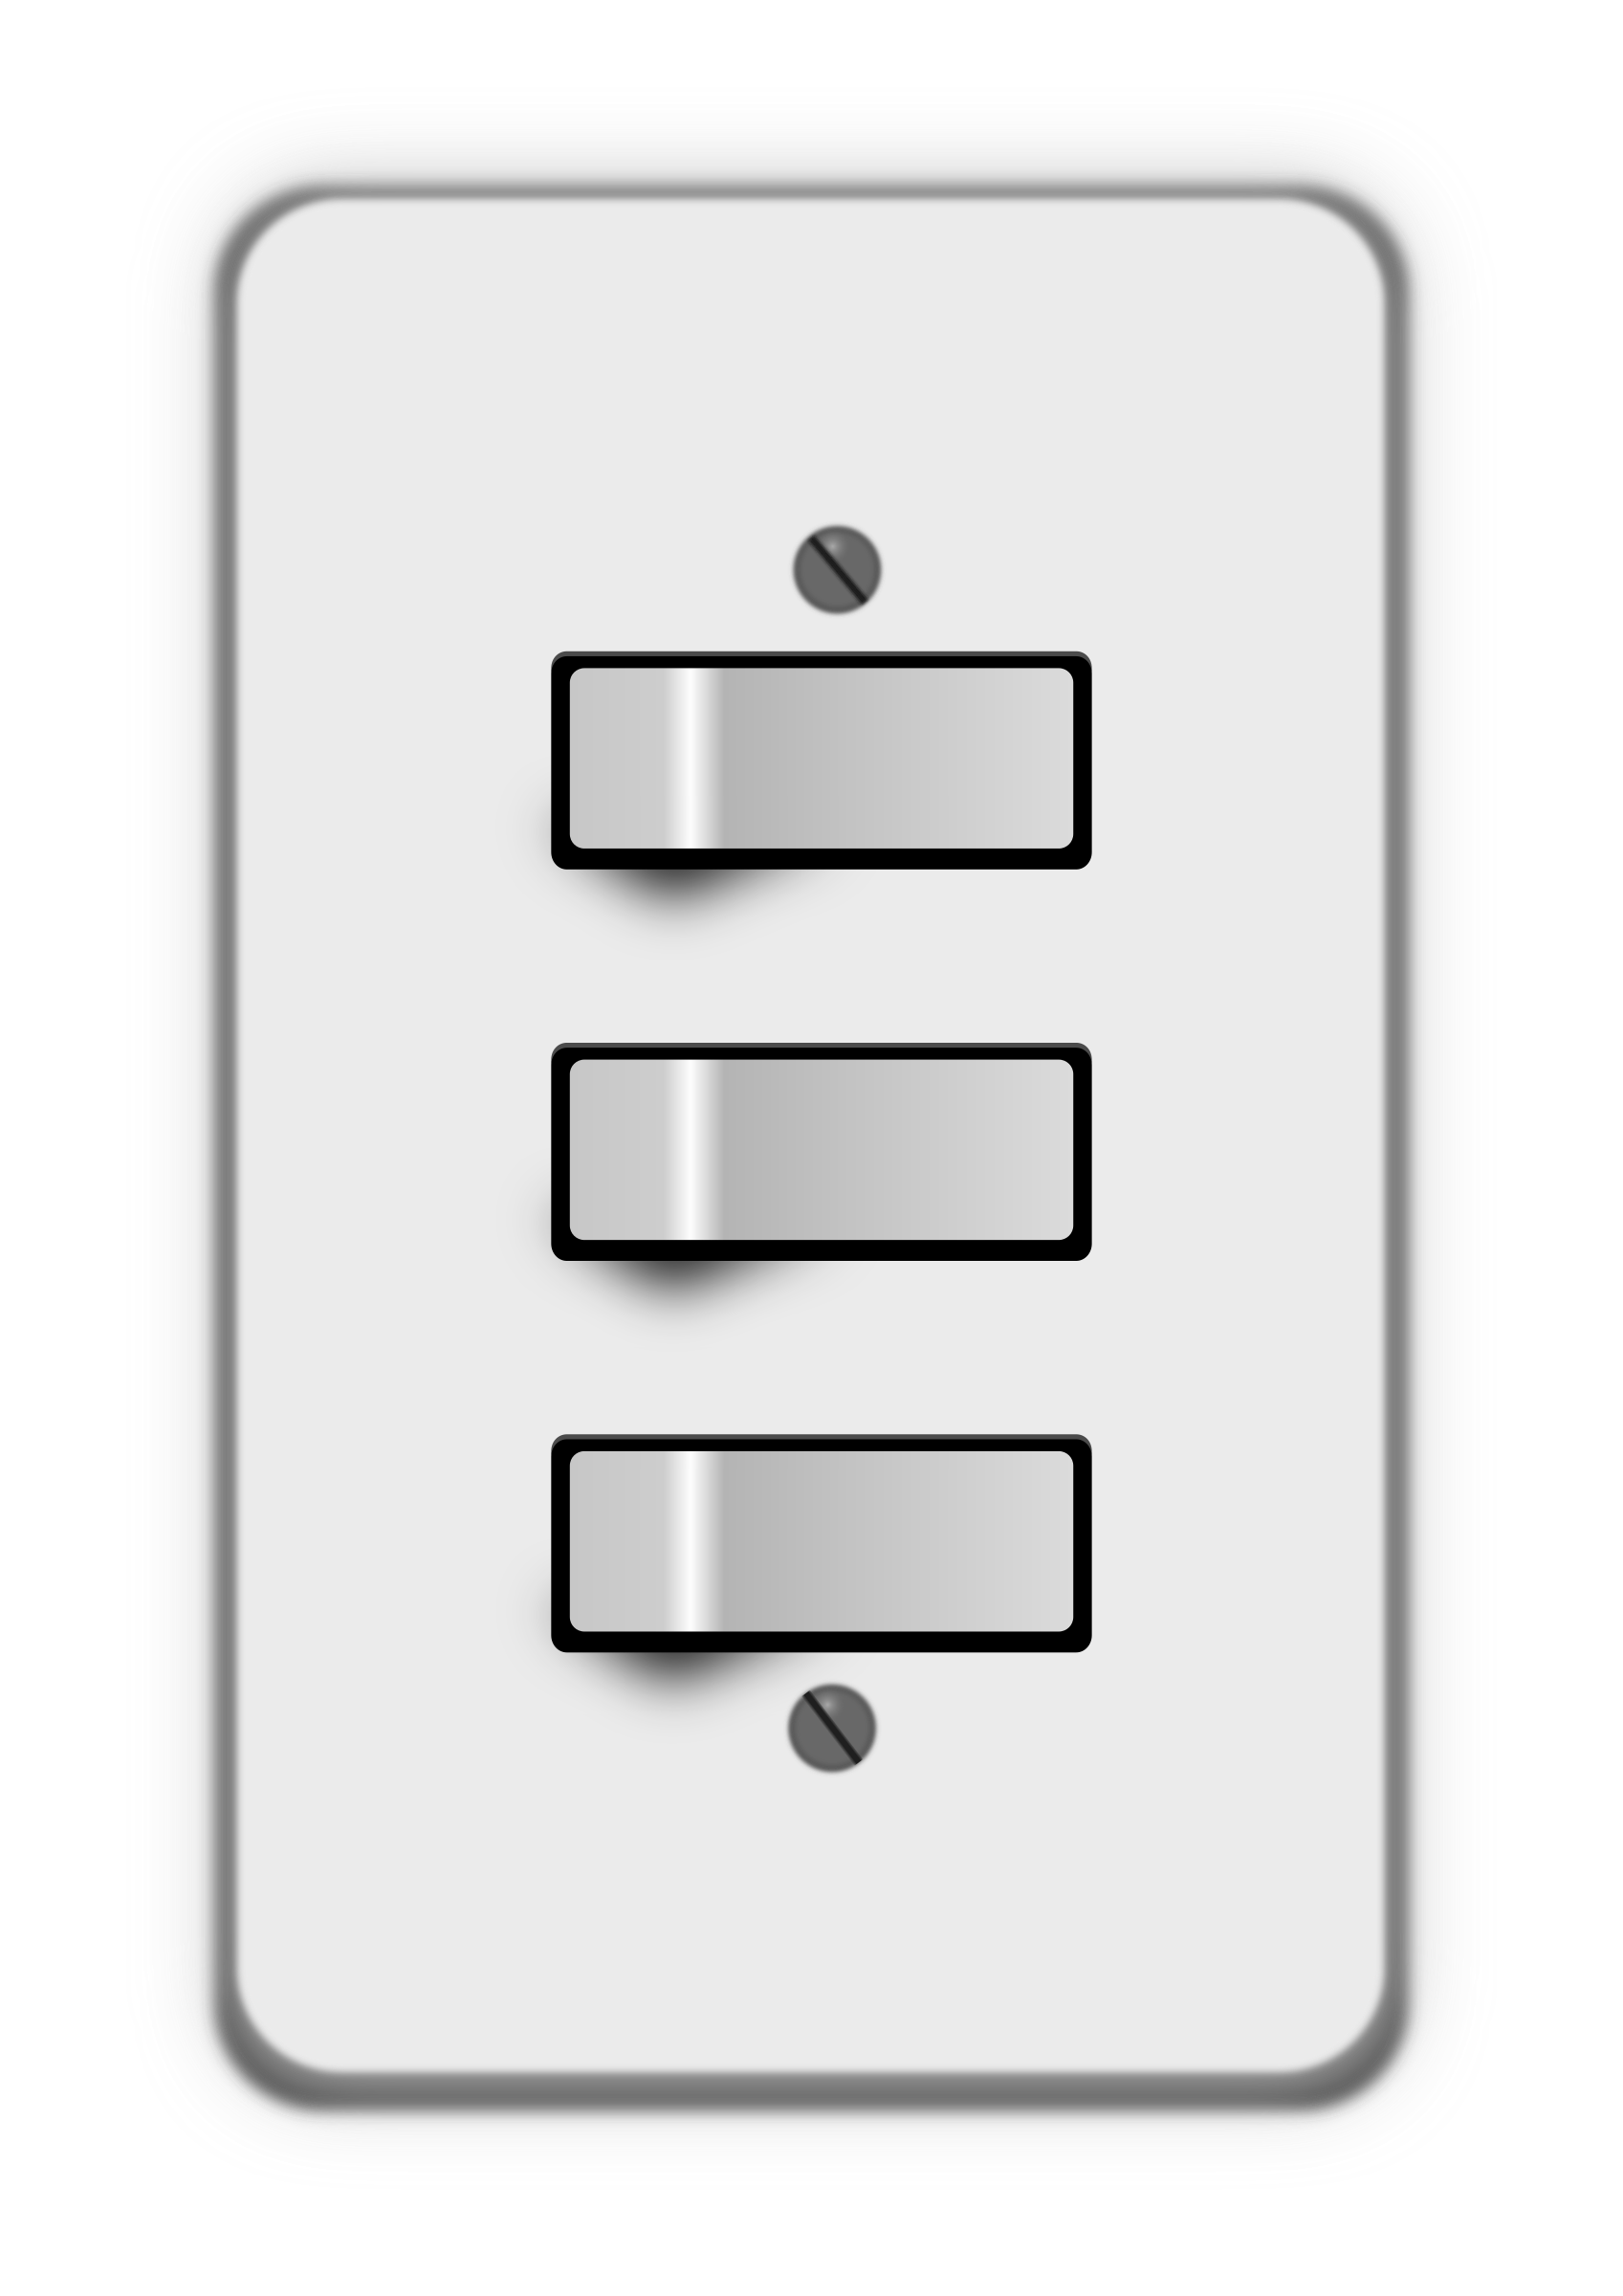 Clipart - Light switch 3 switches (all on)